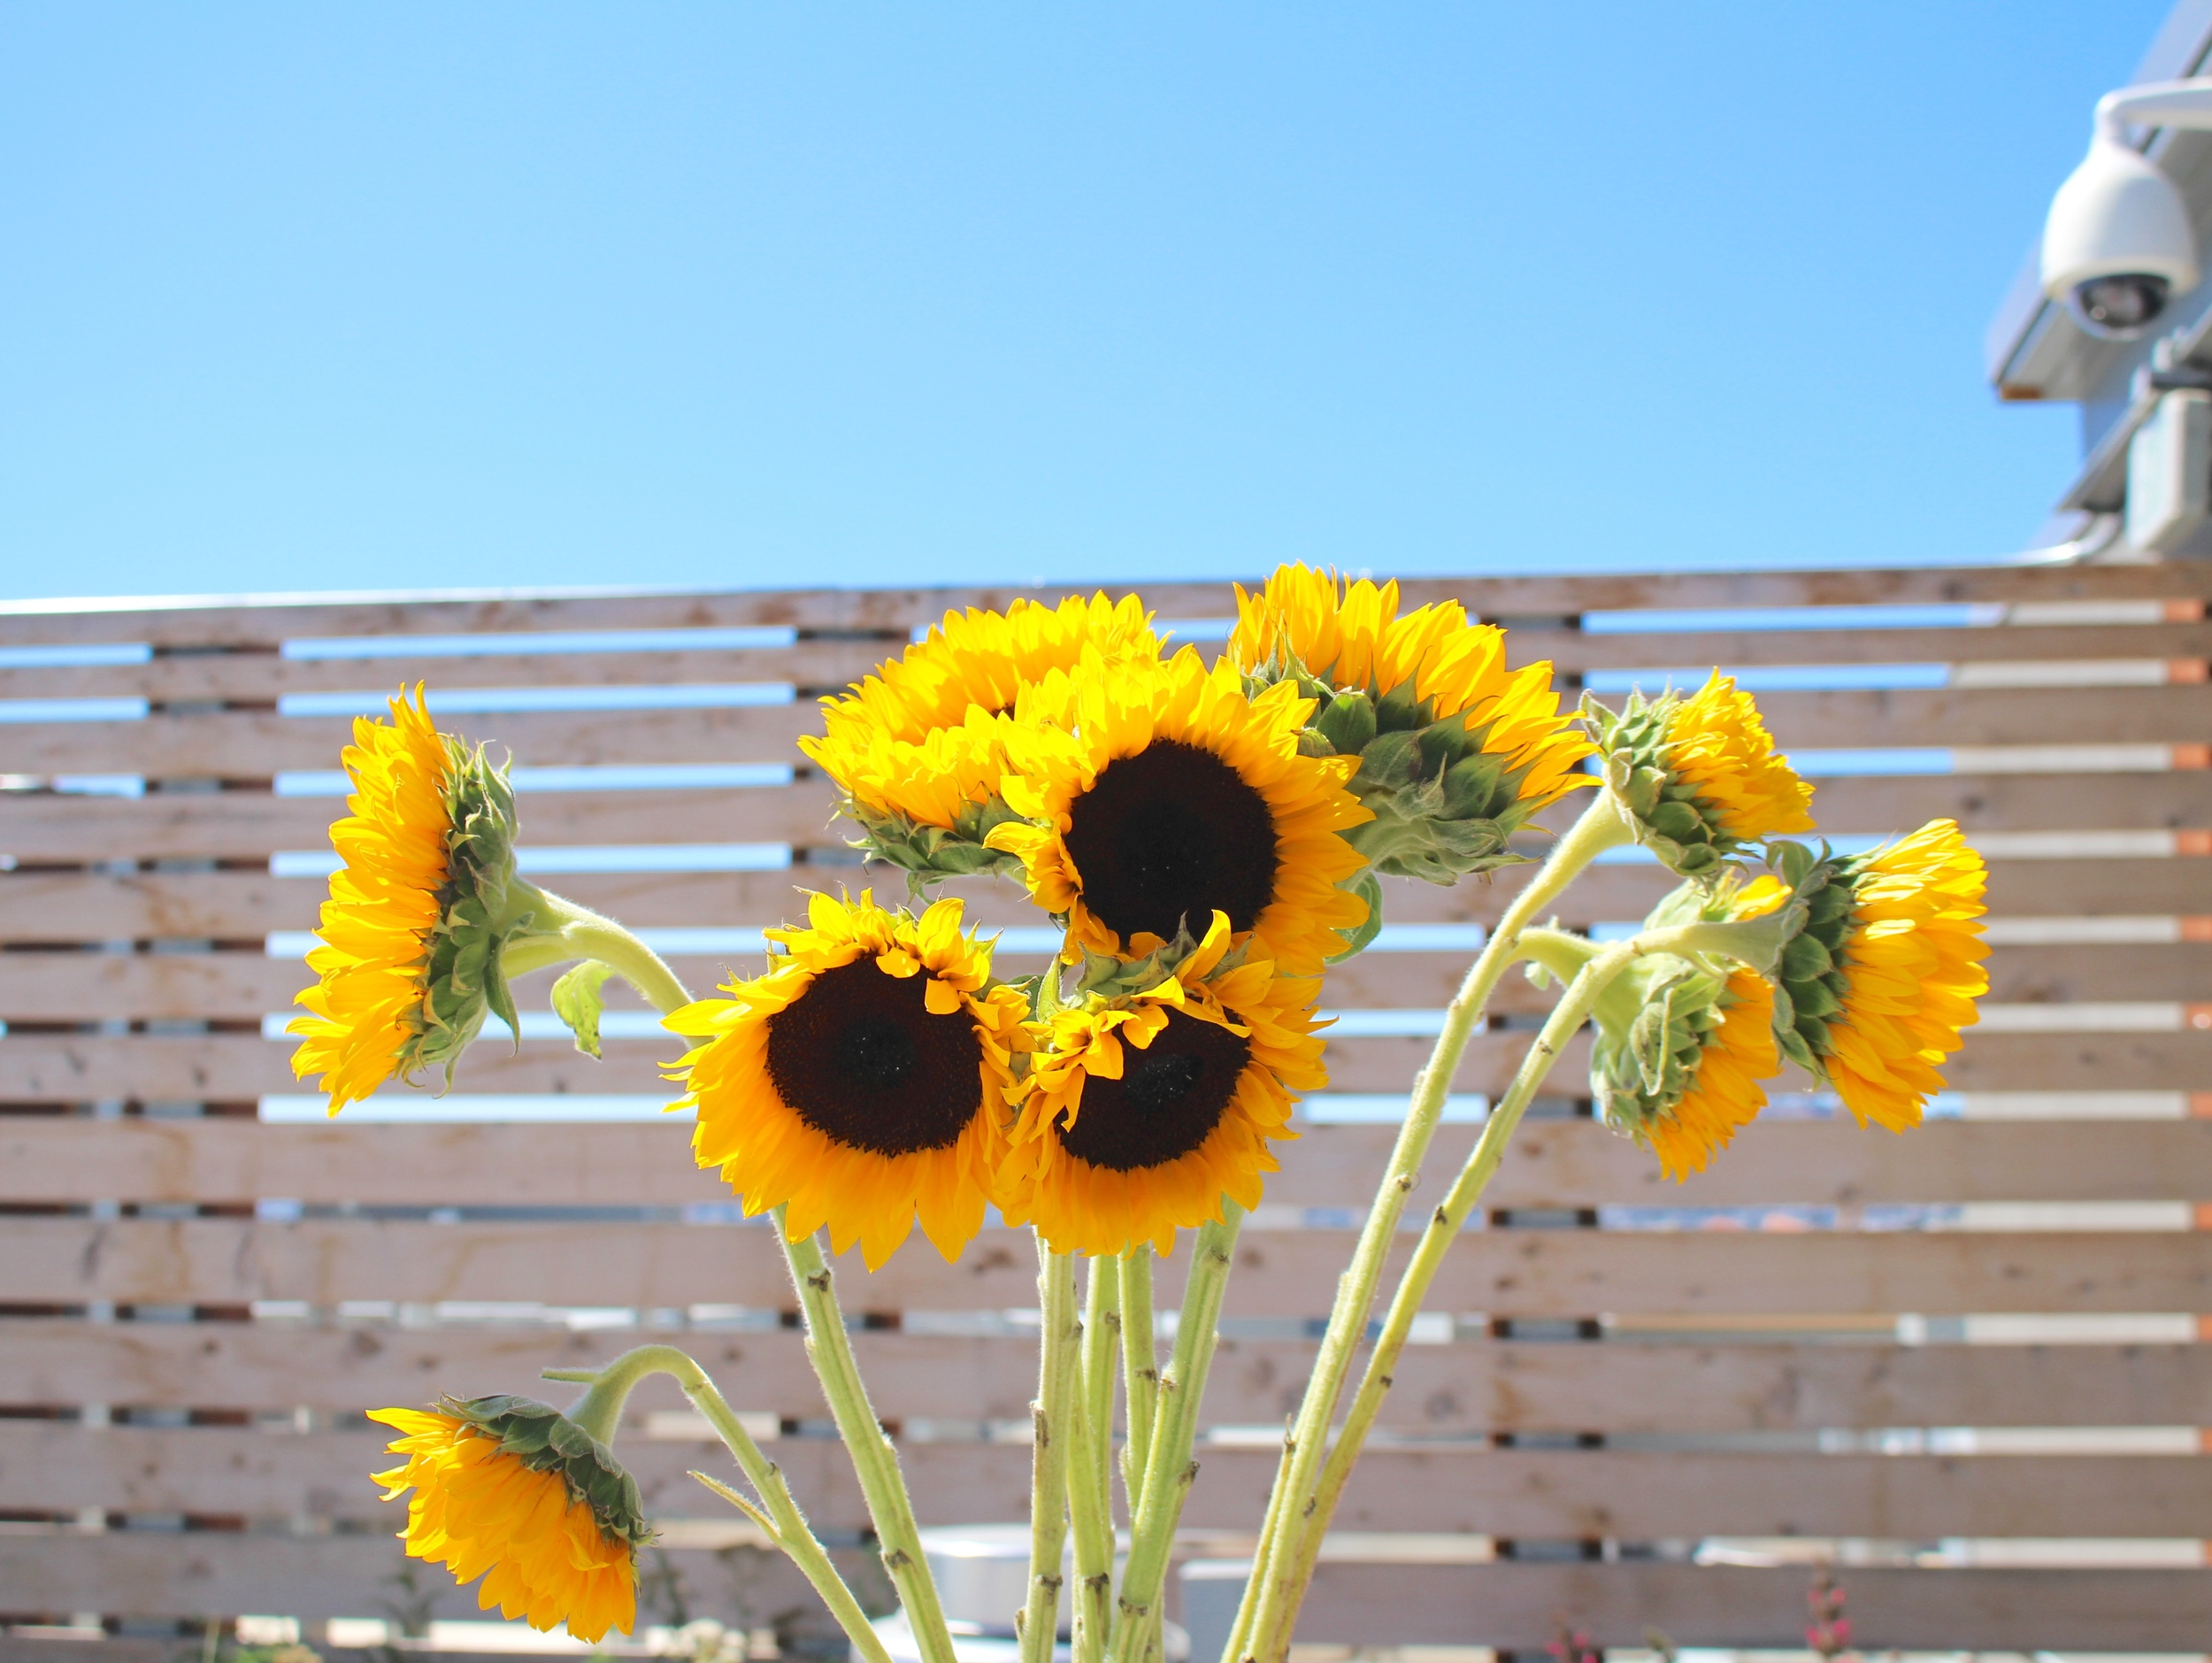 Always in the mood for sunflowers.